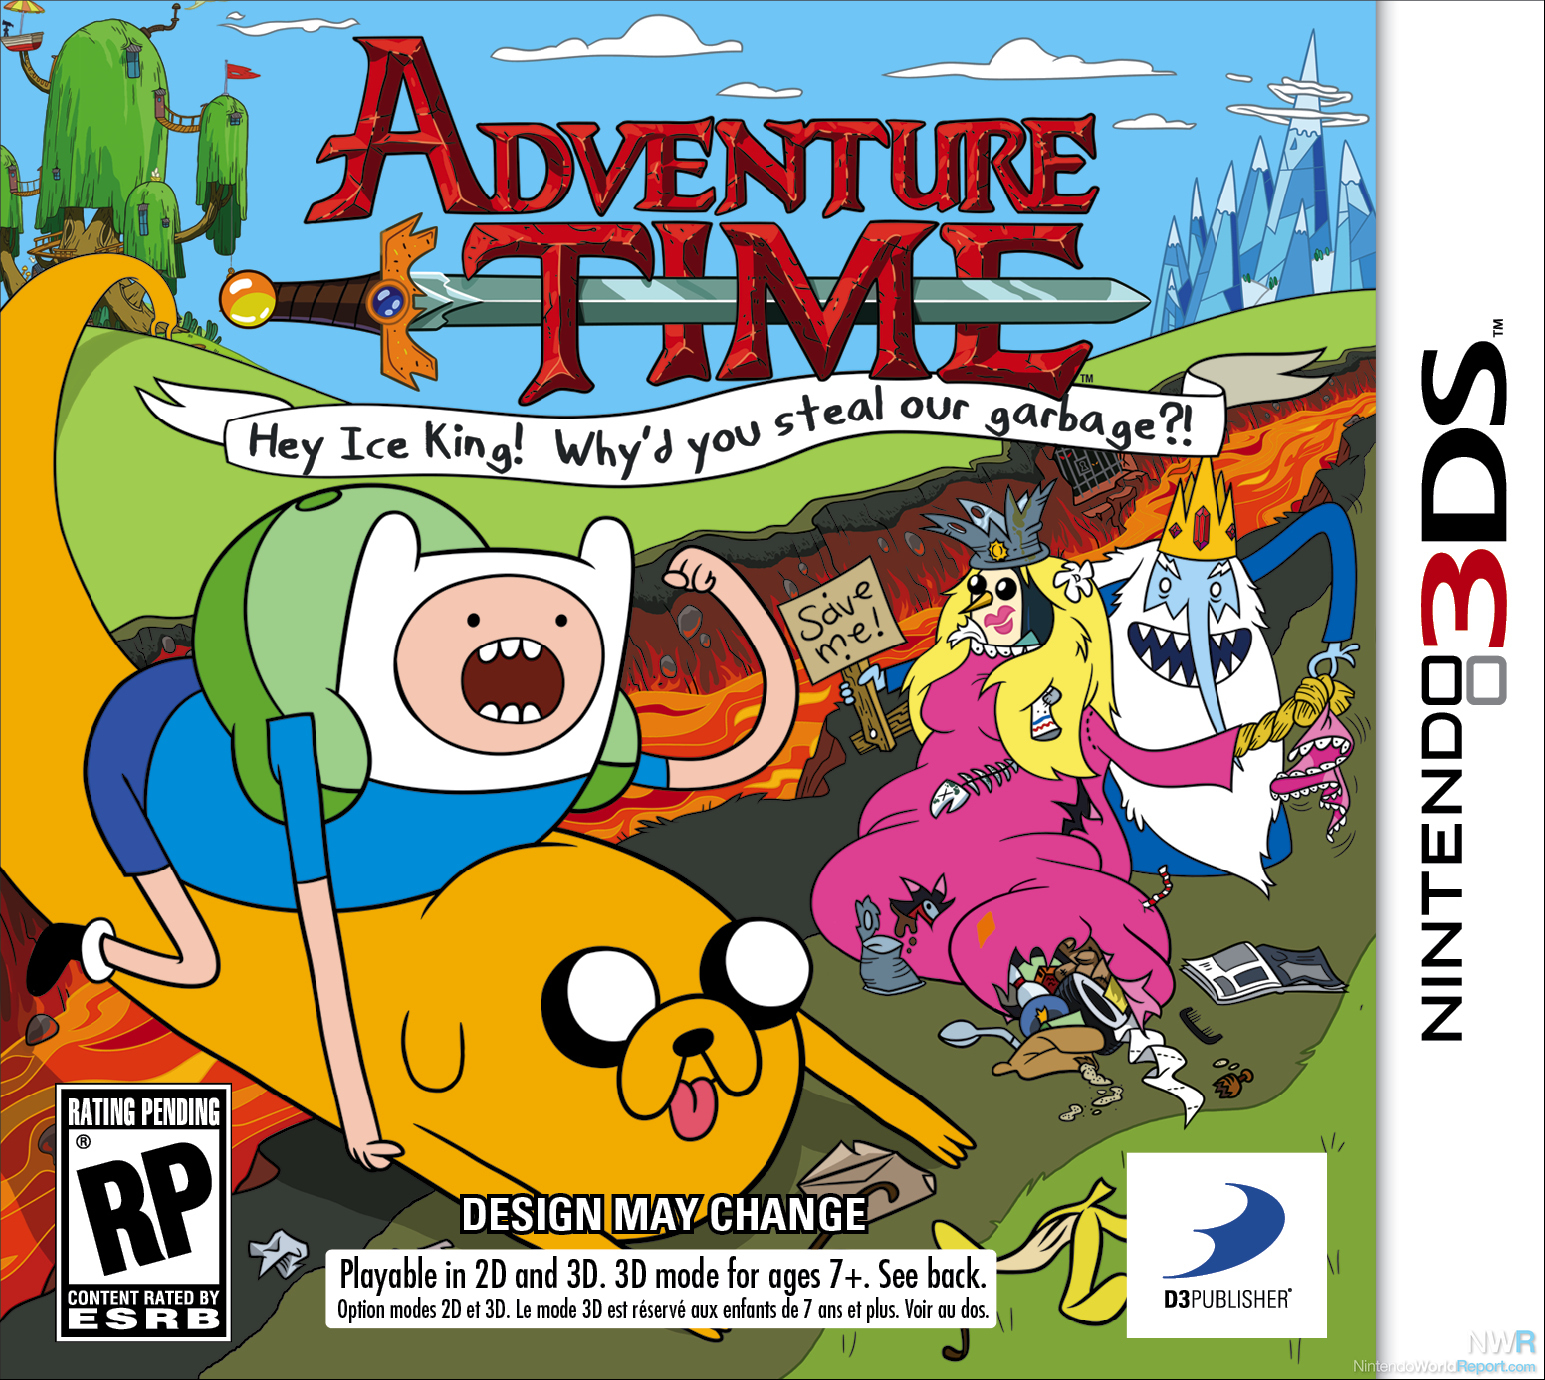 Adventure Time Hey Ice King Whyd you steal our garbage